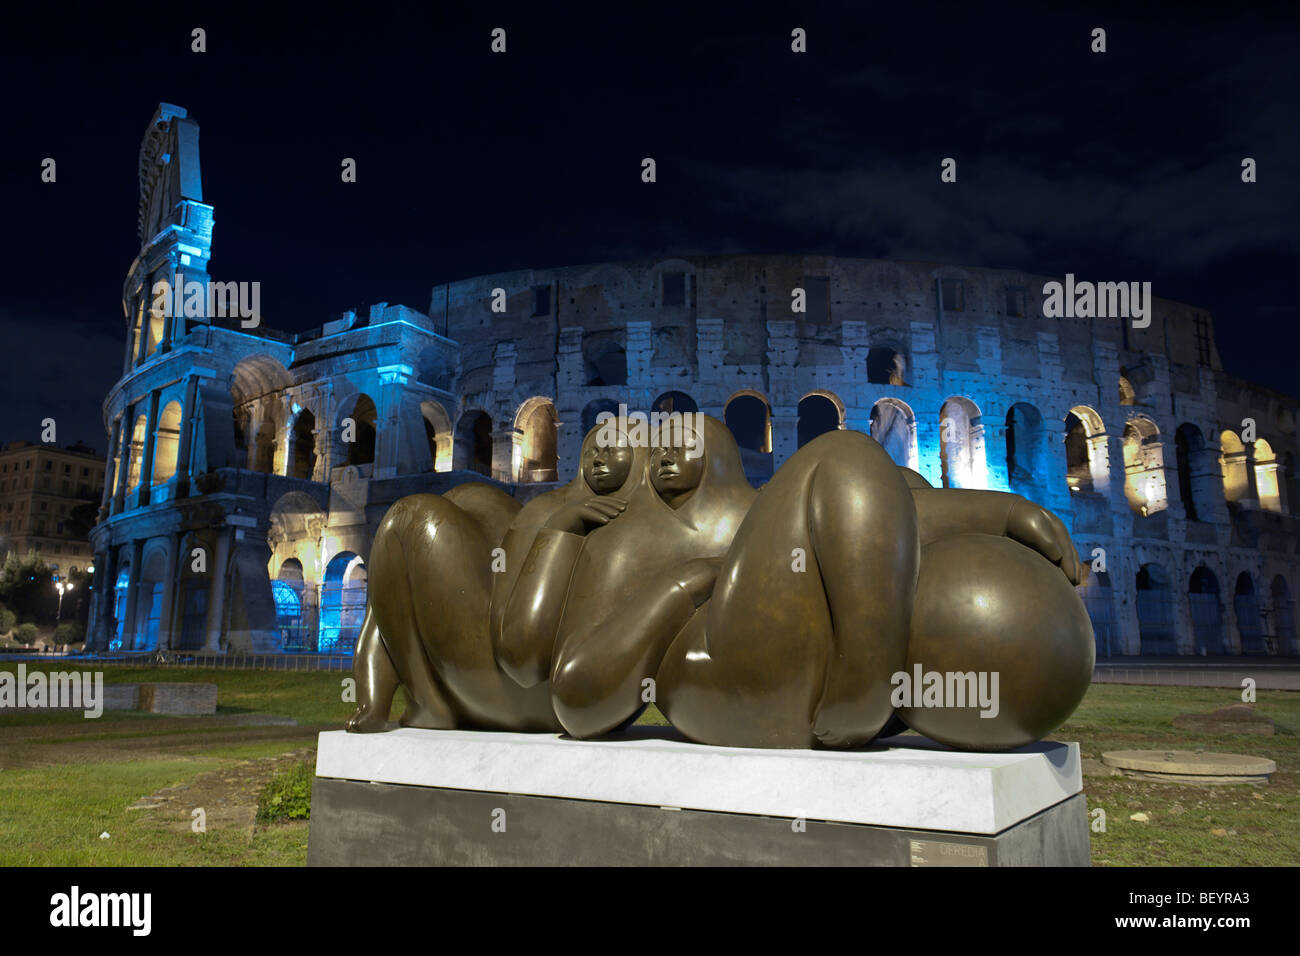 Rome, Italy. A modern bronze sculpture in Piazza del Colosseo, by night. Stock Photo